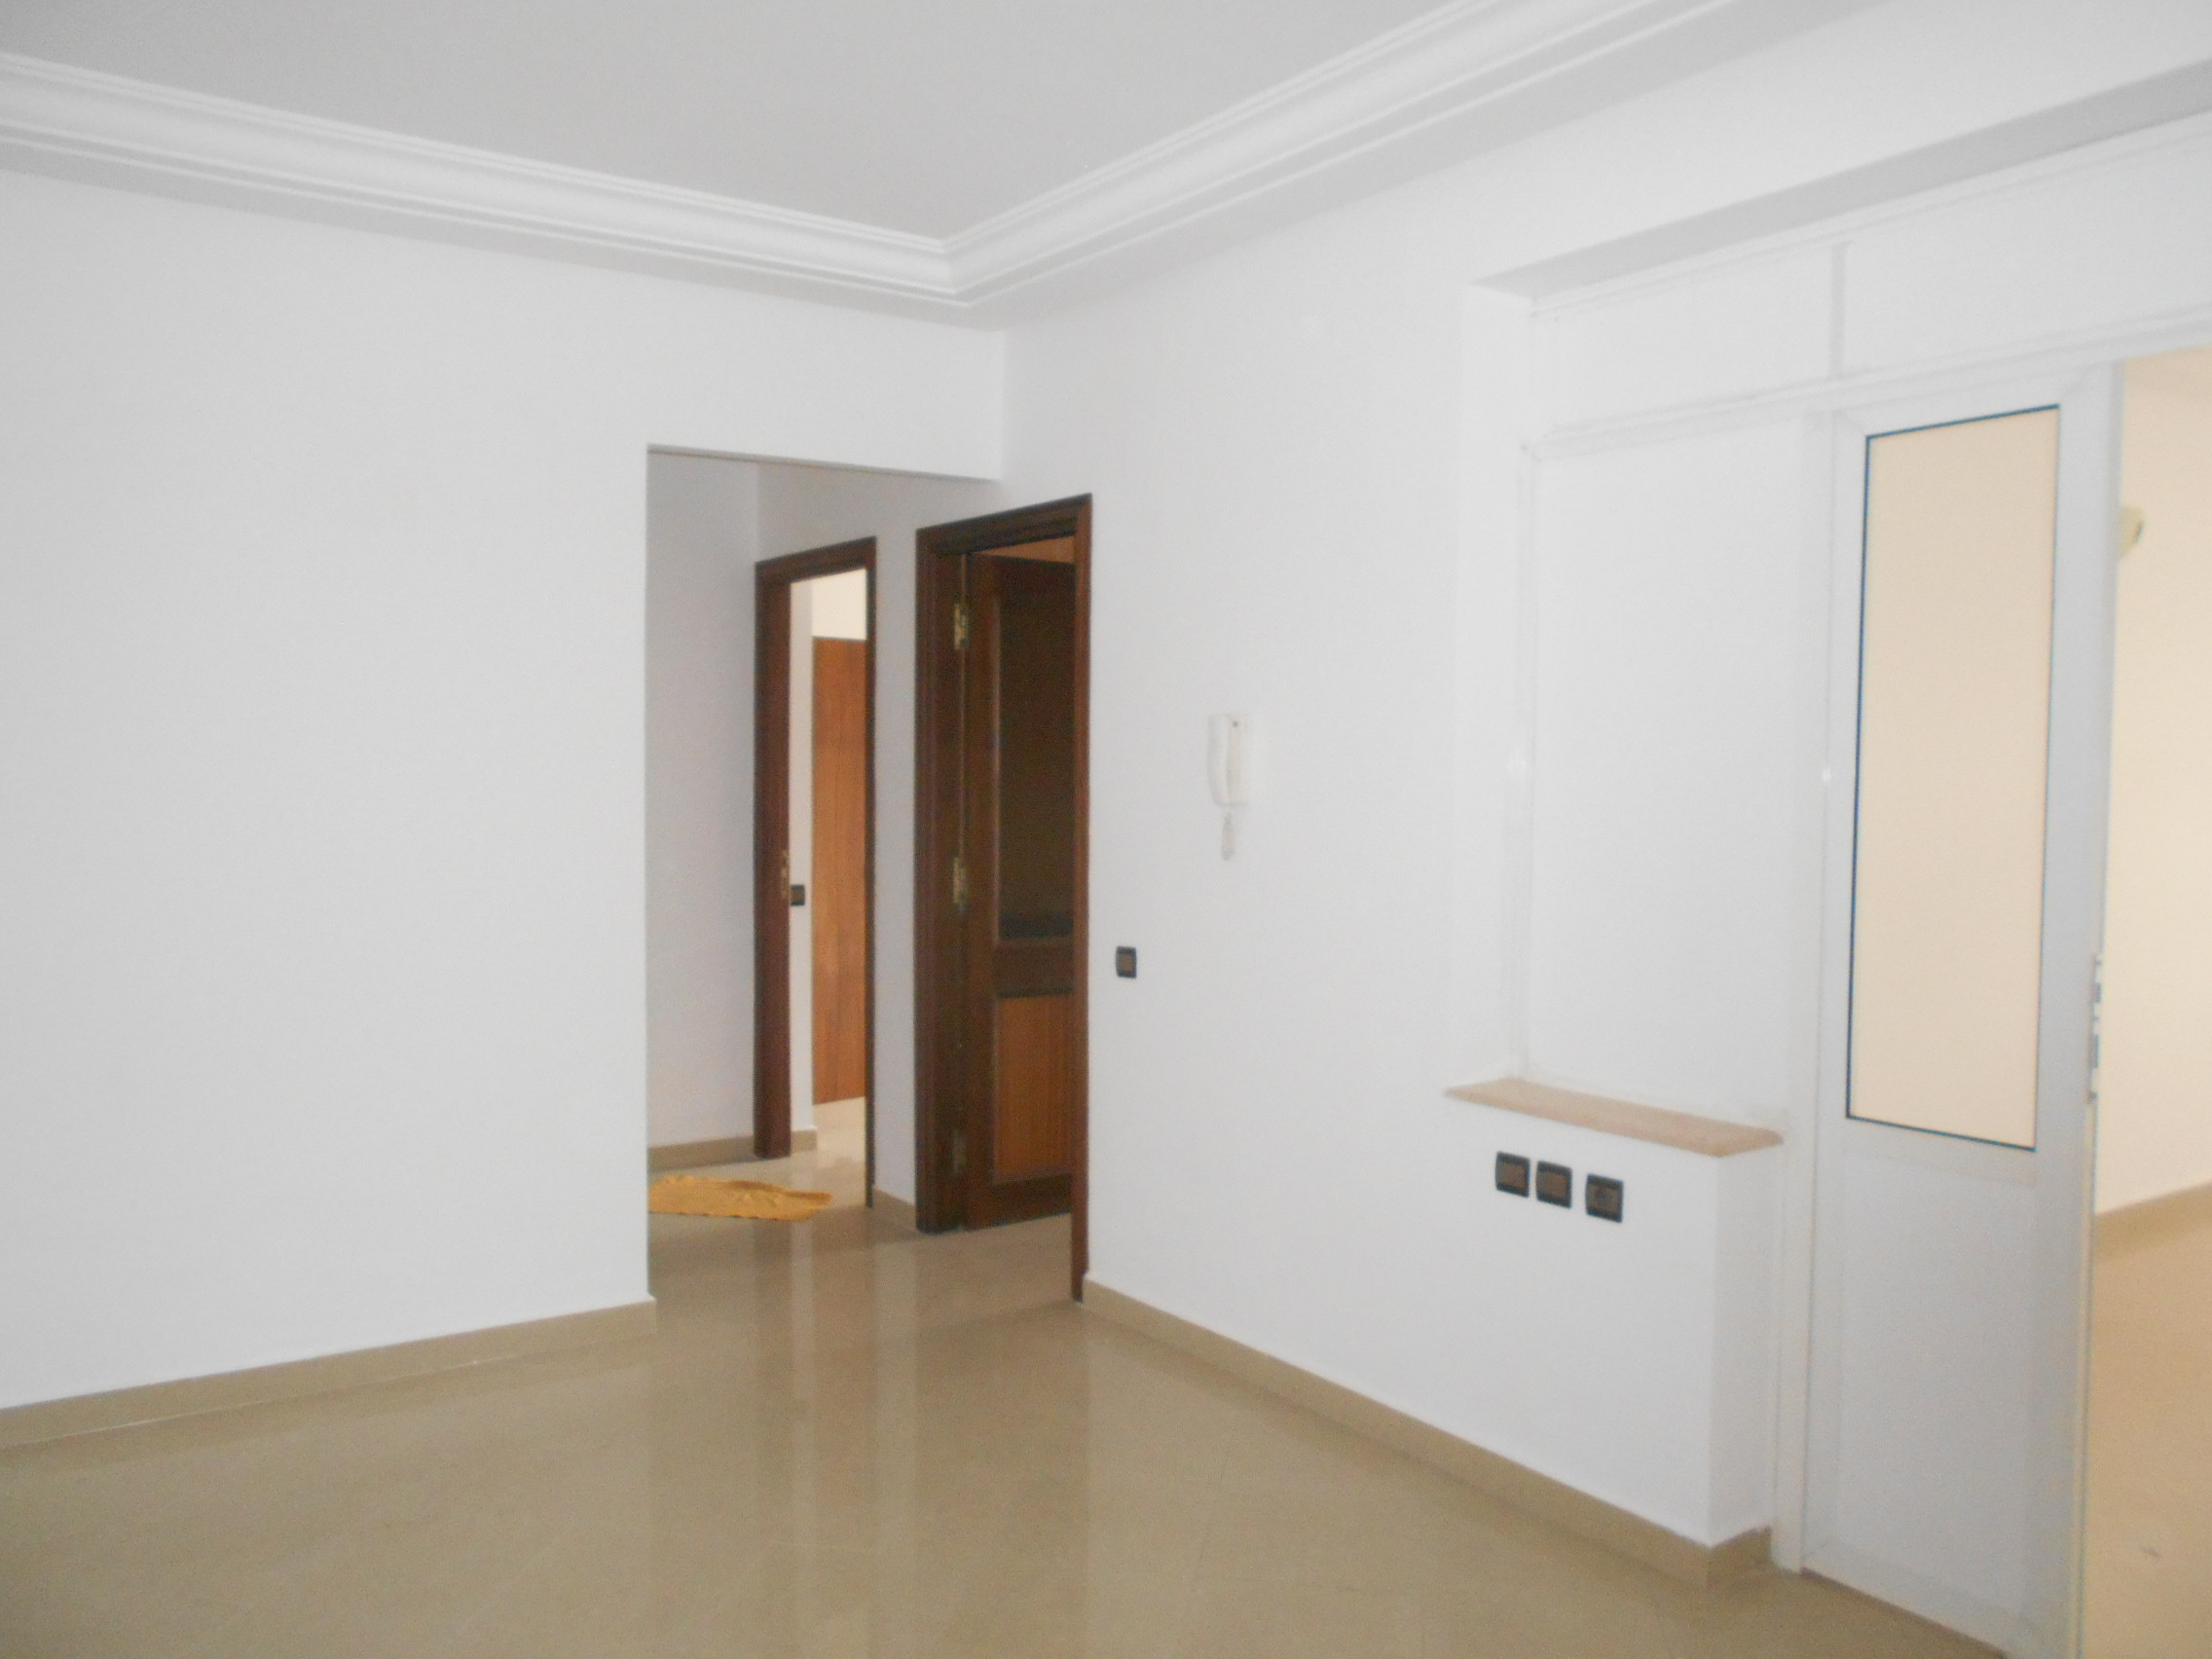 Vente <strong>Appartement</strong> Rabat Agdal <strong>71 m2</strong>